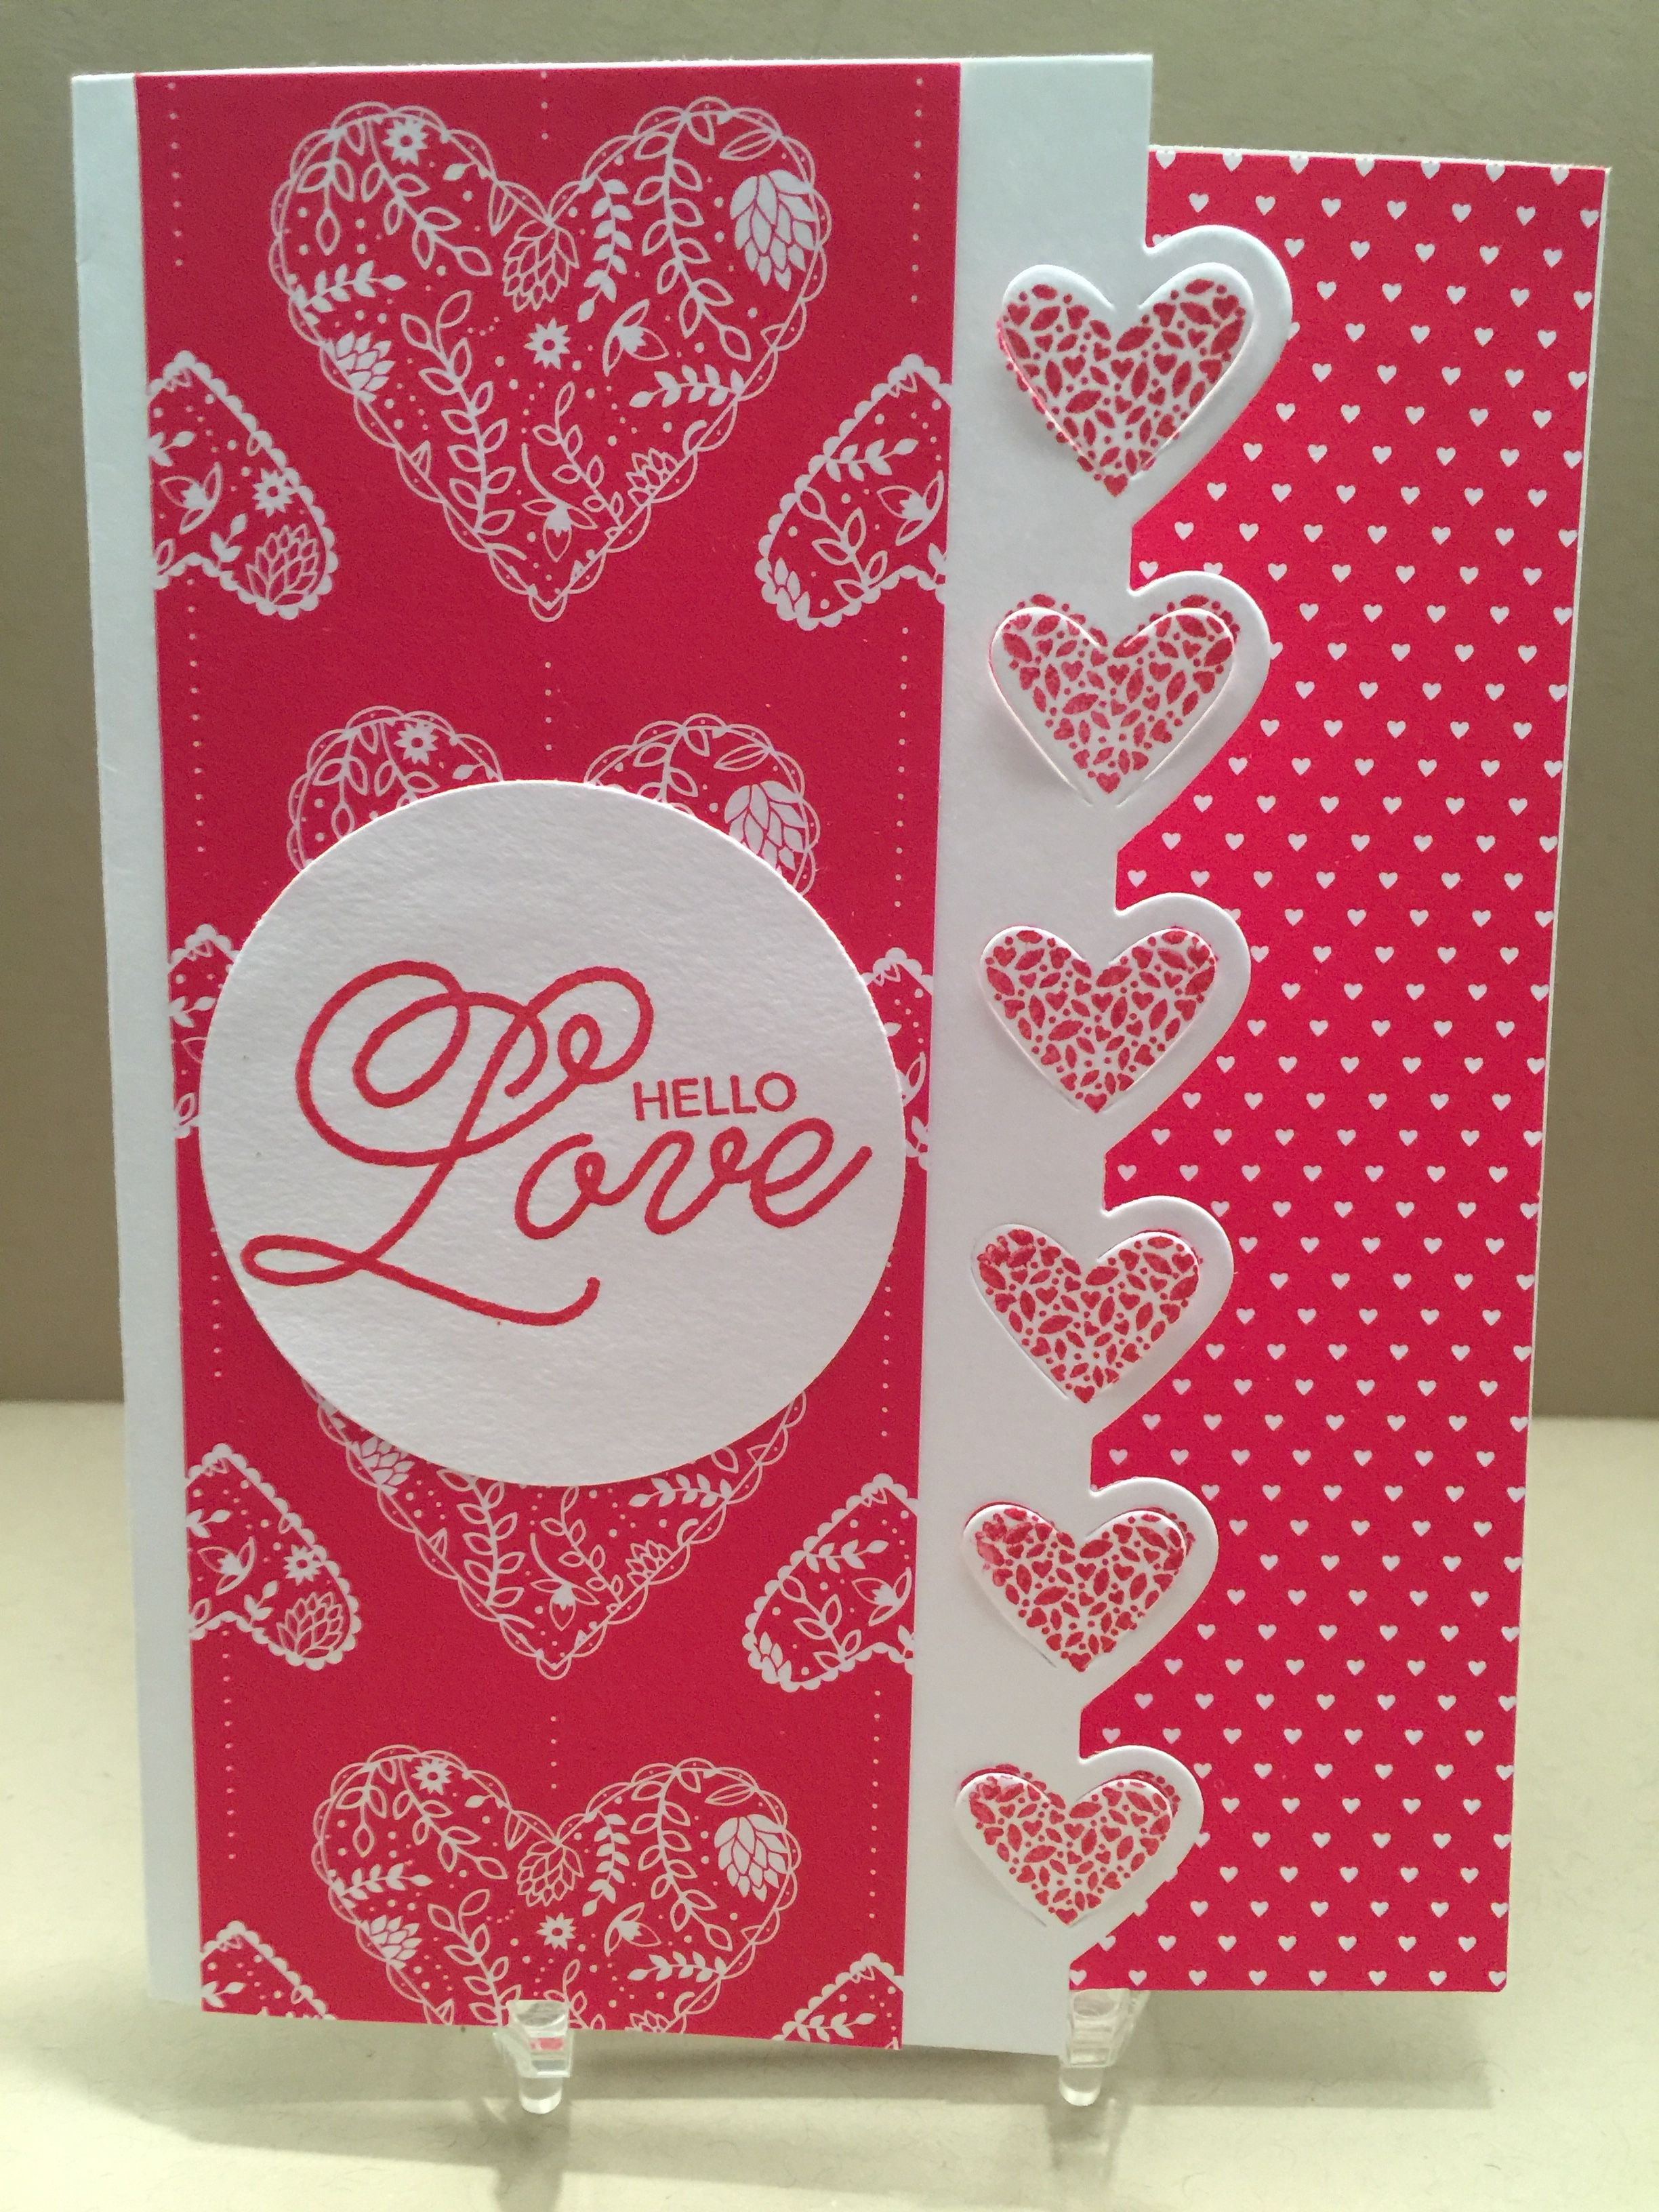 Stampin Up Valentine Cards Buy Stampin Up Products OnLine at – Buy Valentine Cards